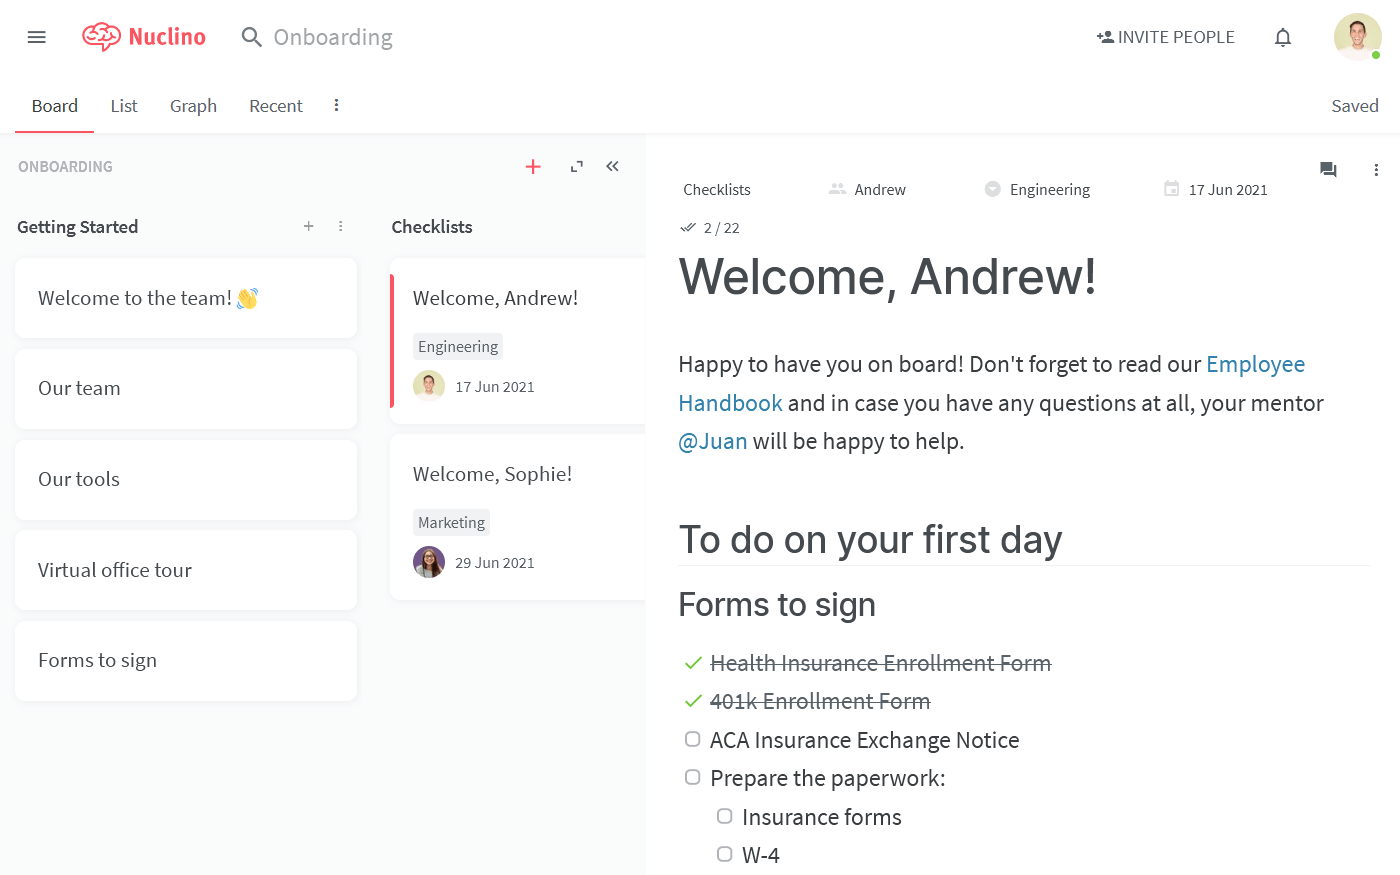 New employee onboarding checklist in Nuclino